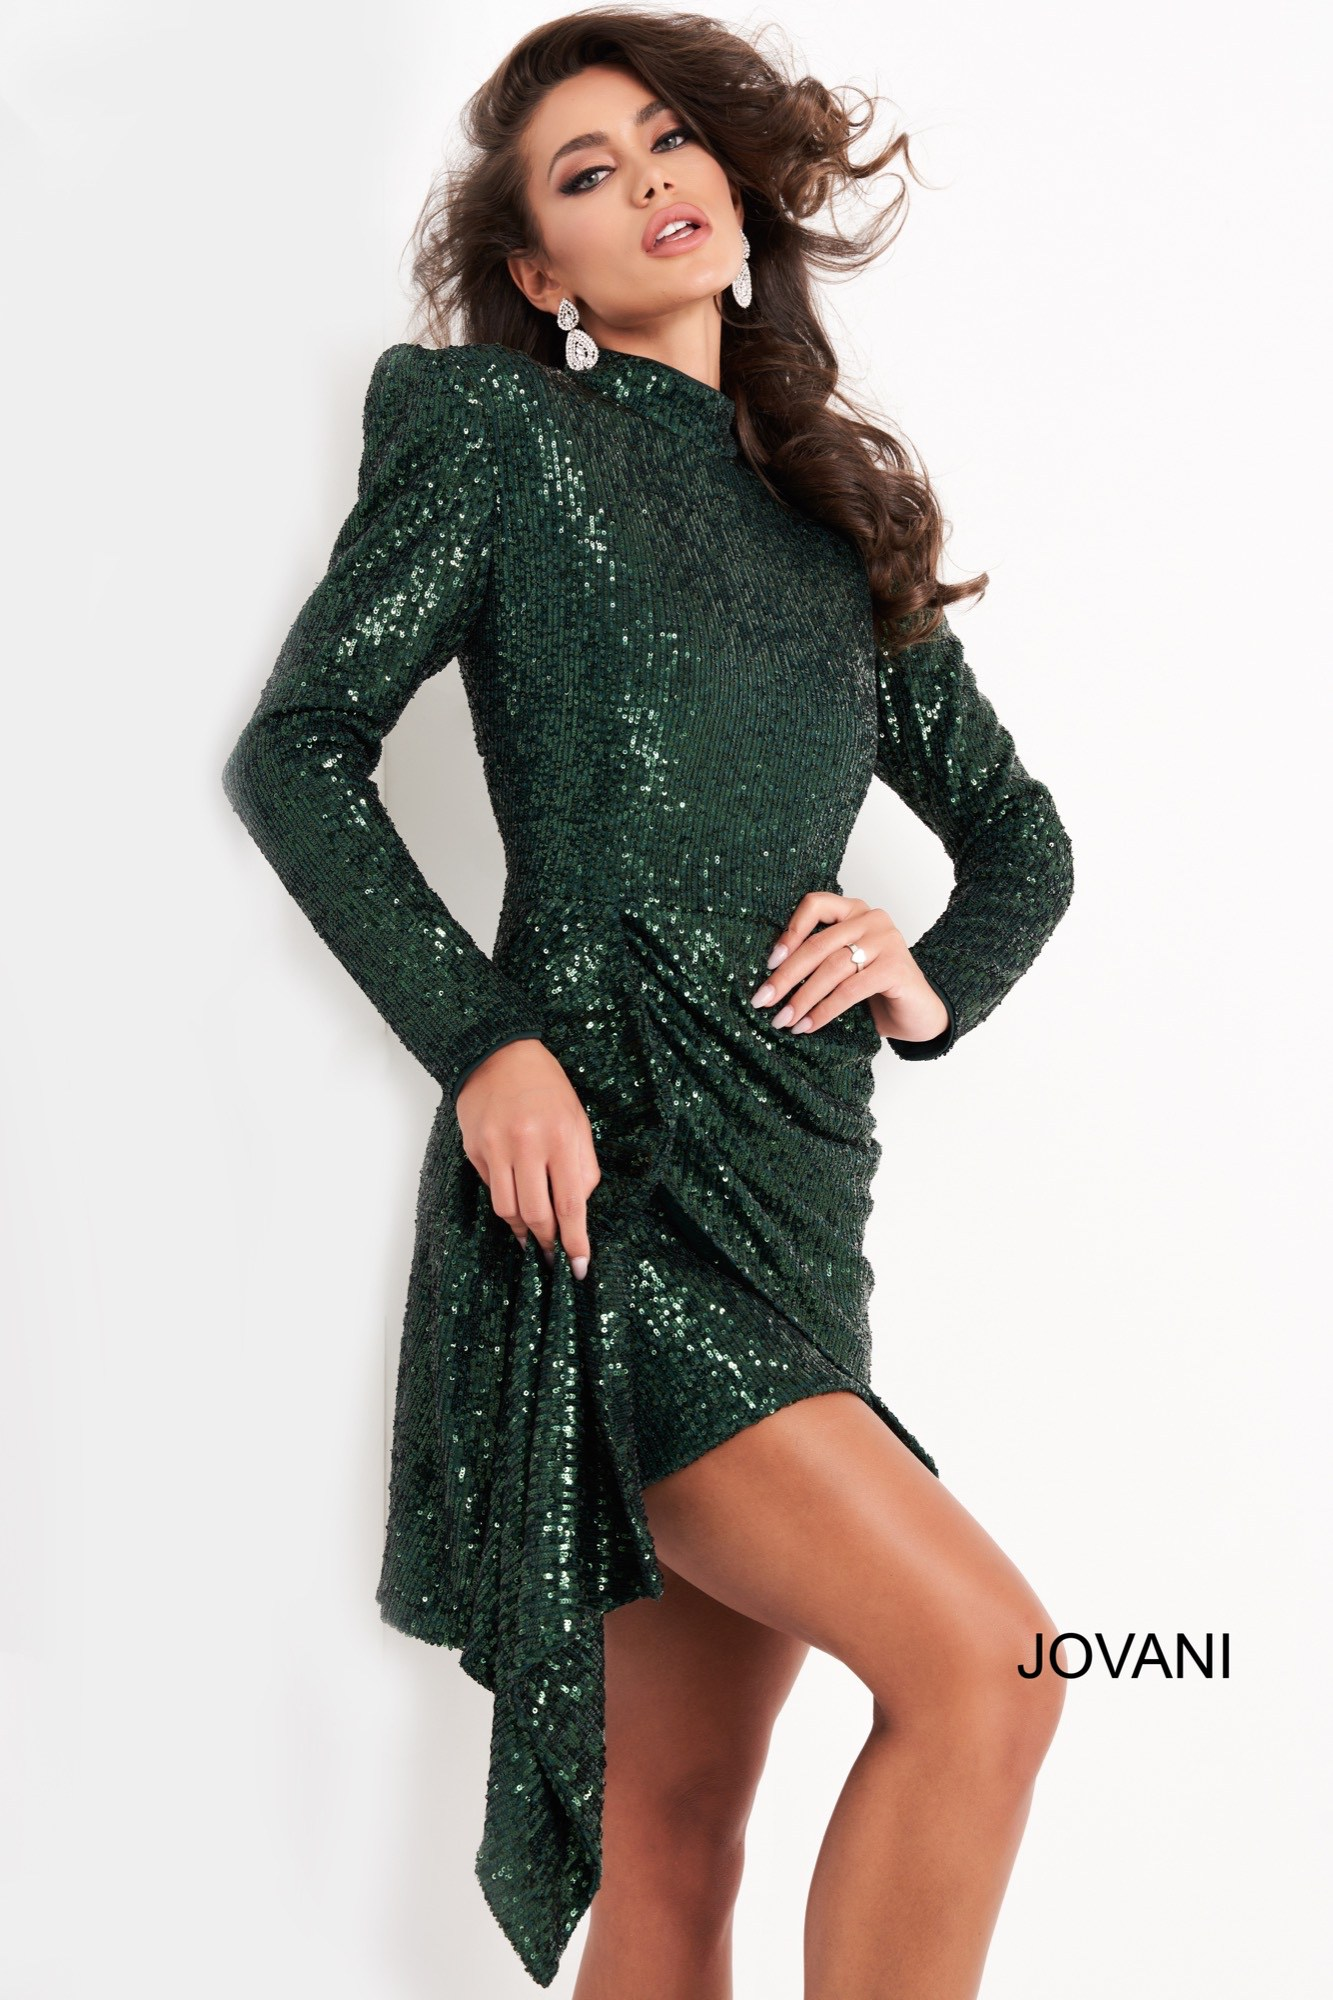 jovani Jovani 04270 Green Long Sleeve Sequin Cocktail Dress  on mobile 1